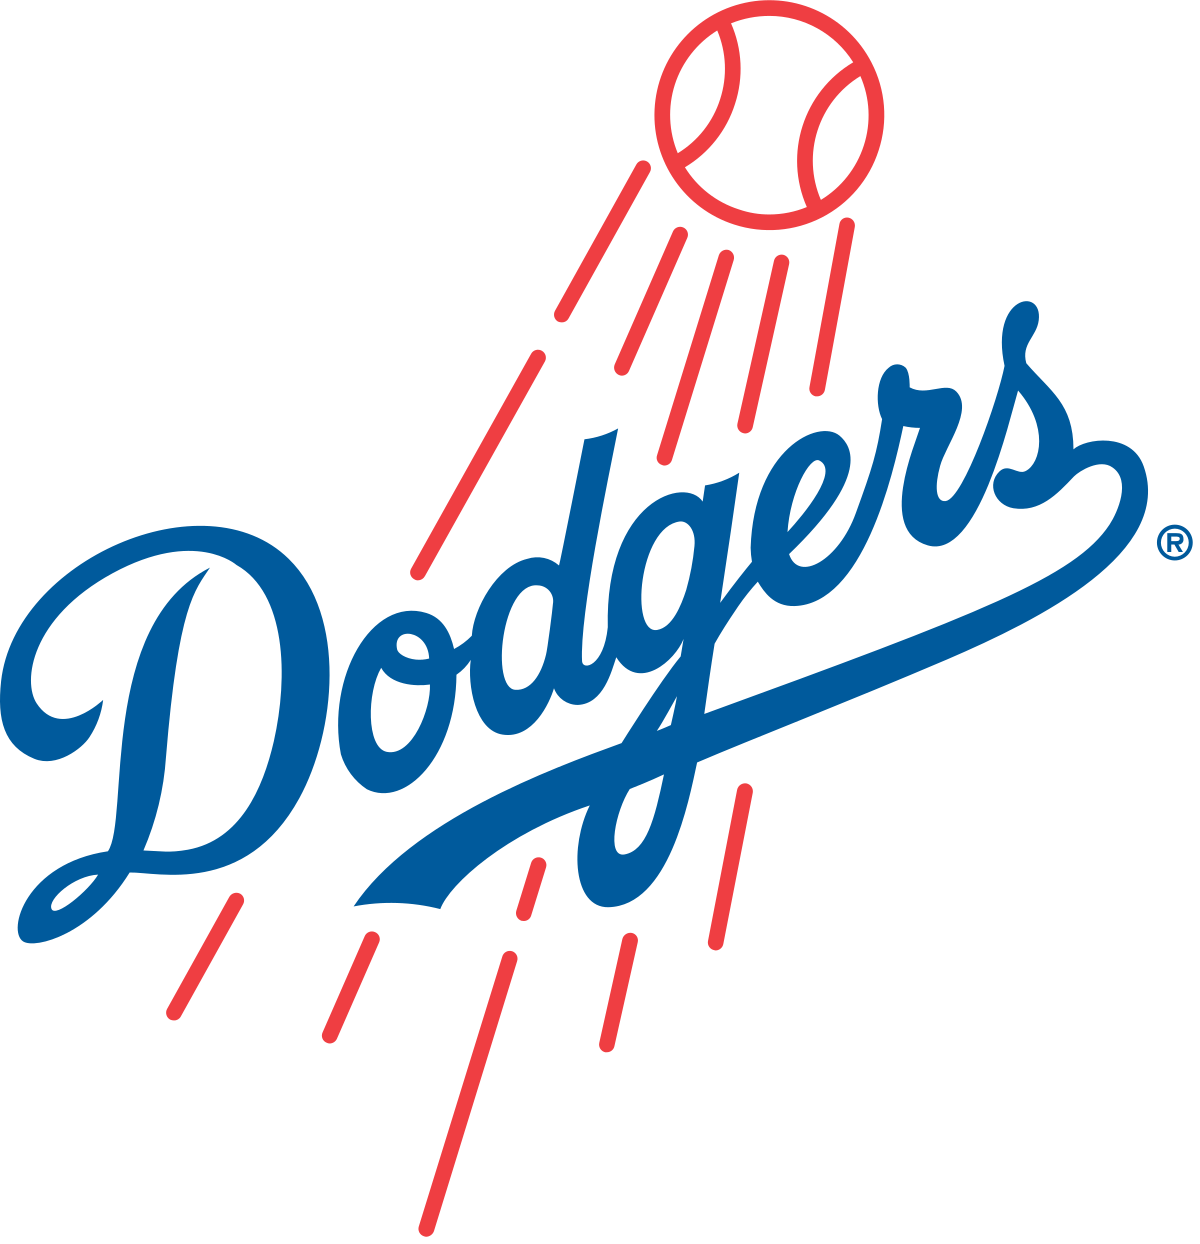 Los Angeles Dodgers Logo - Los Angeles Dodgers